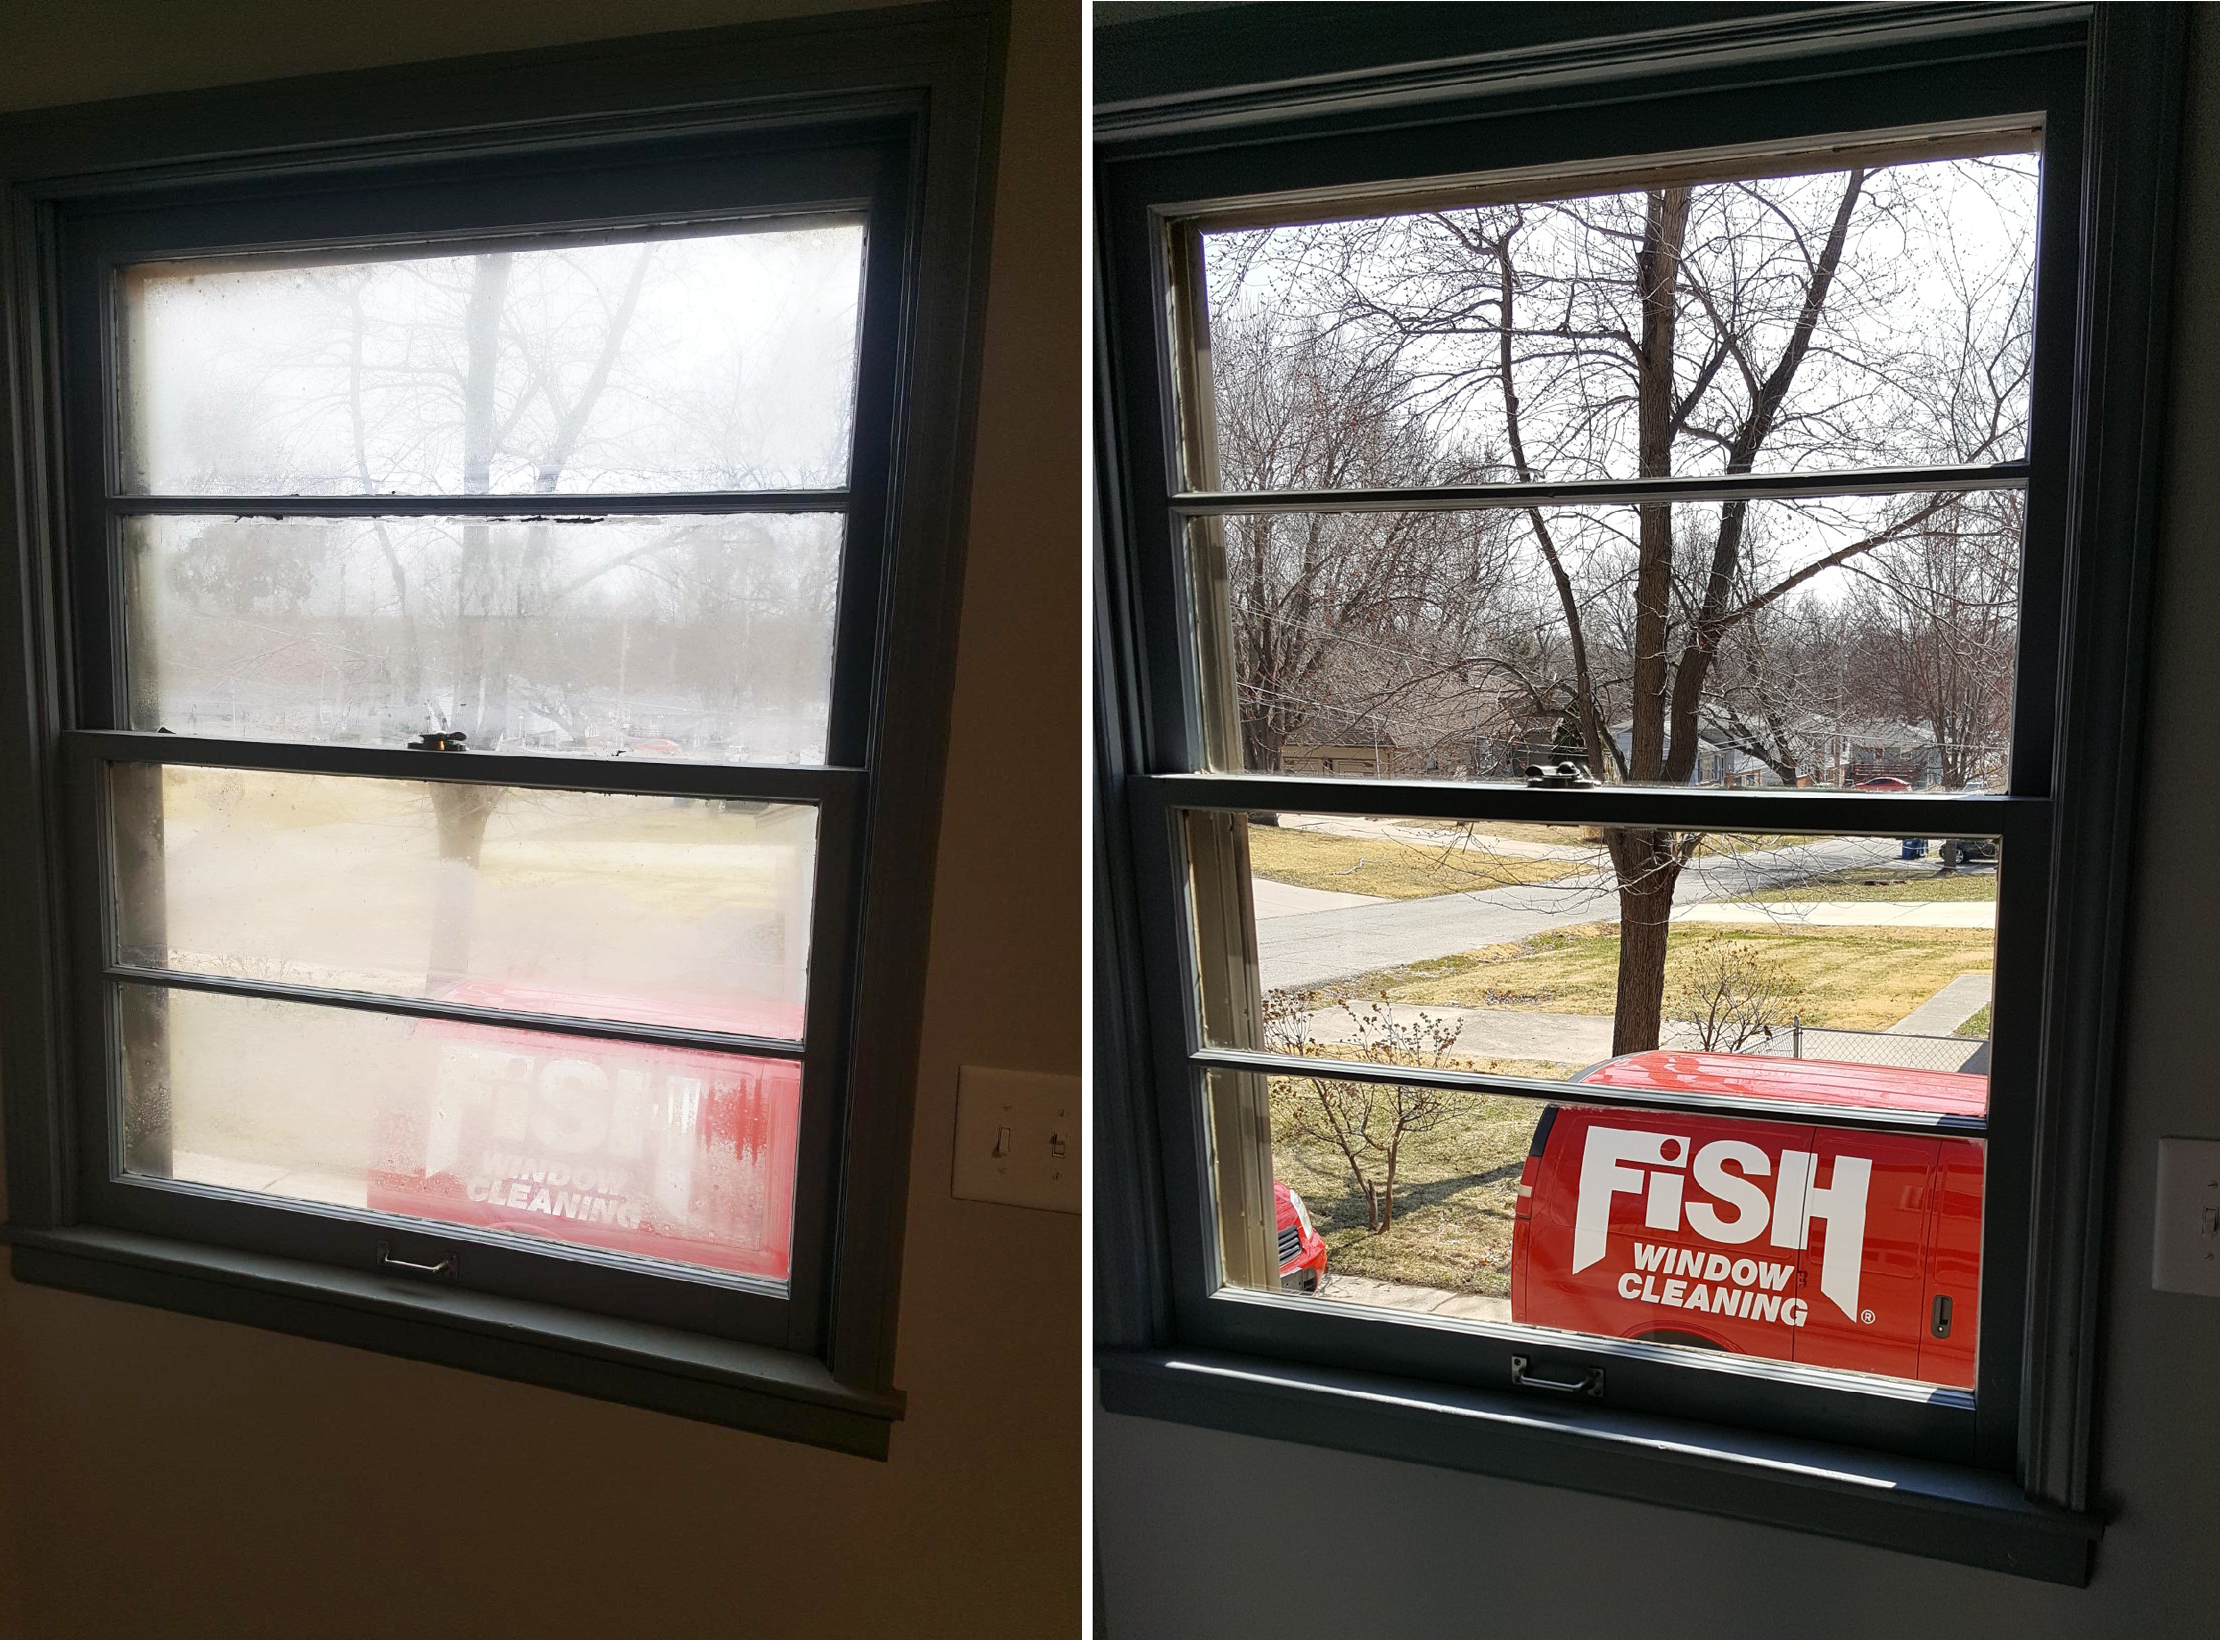 Fish Window Cleaning Independence MO Cleaner